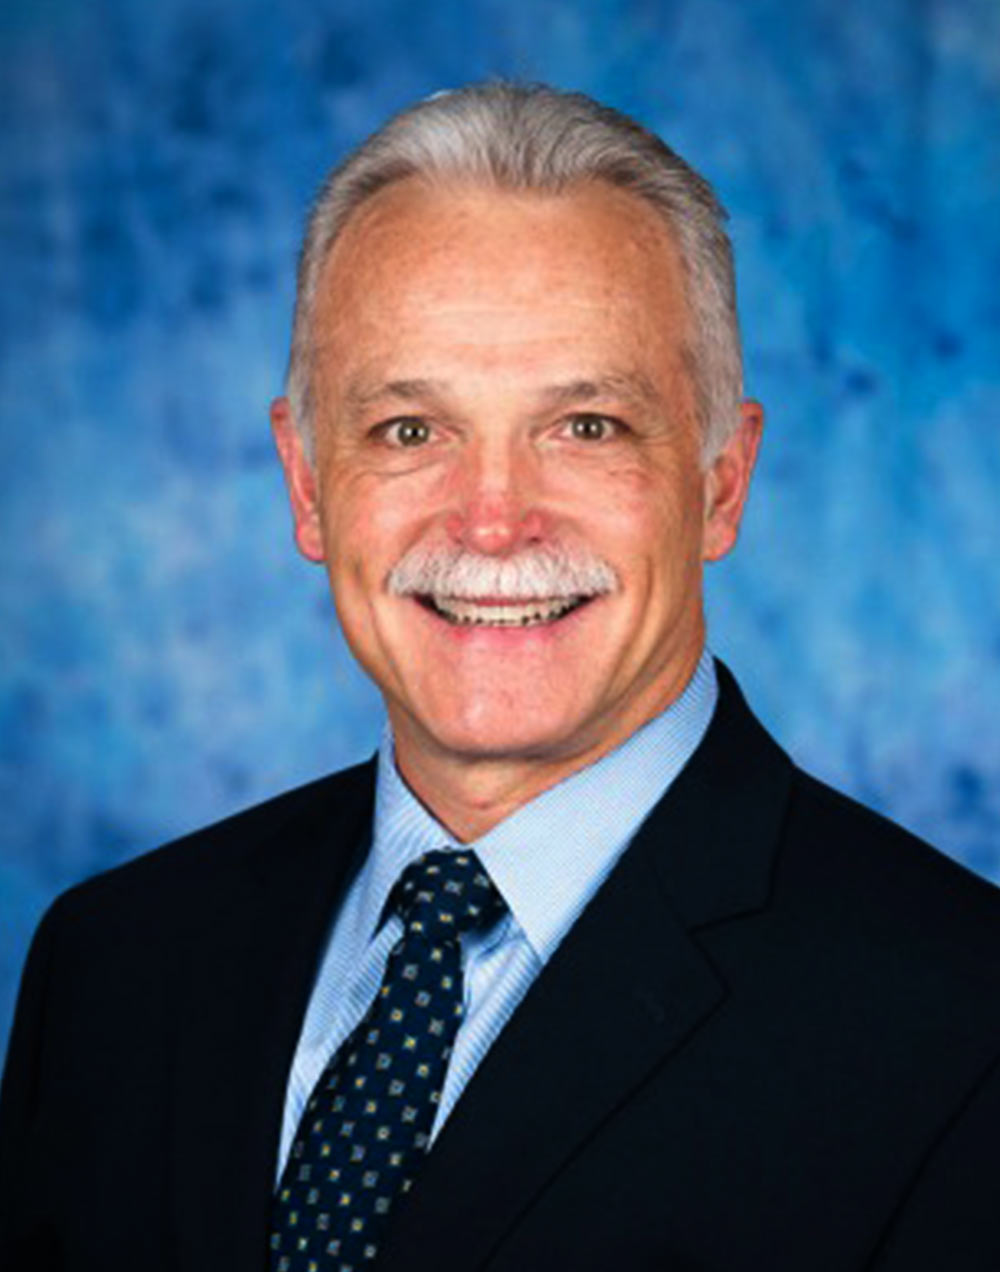 Mike Ward – Senior Vice President and Chief Information Officer